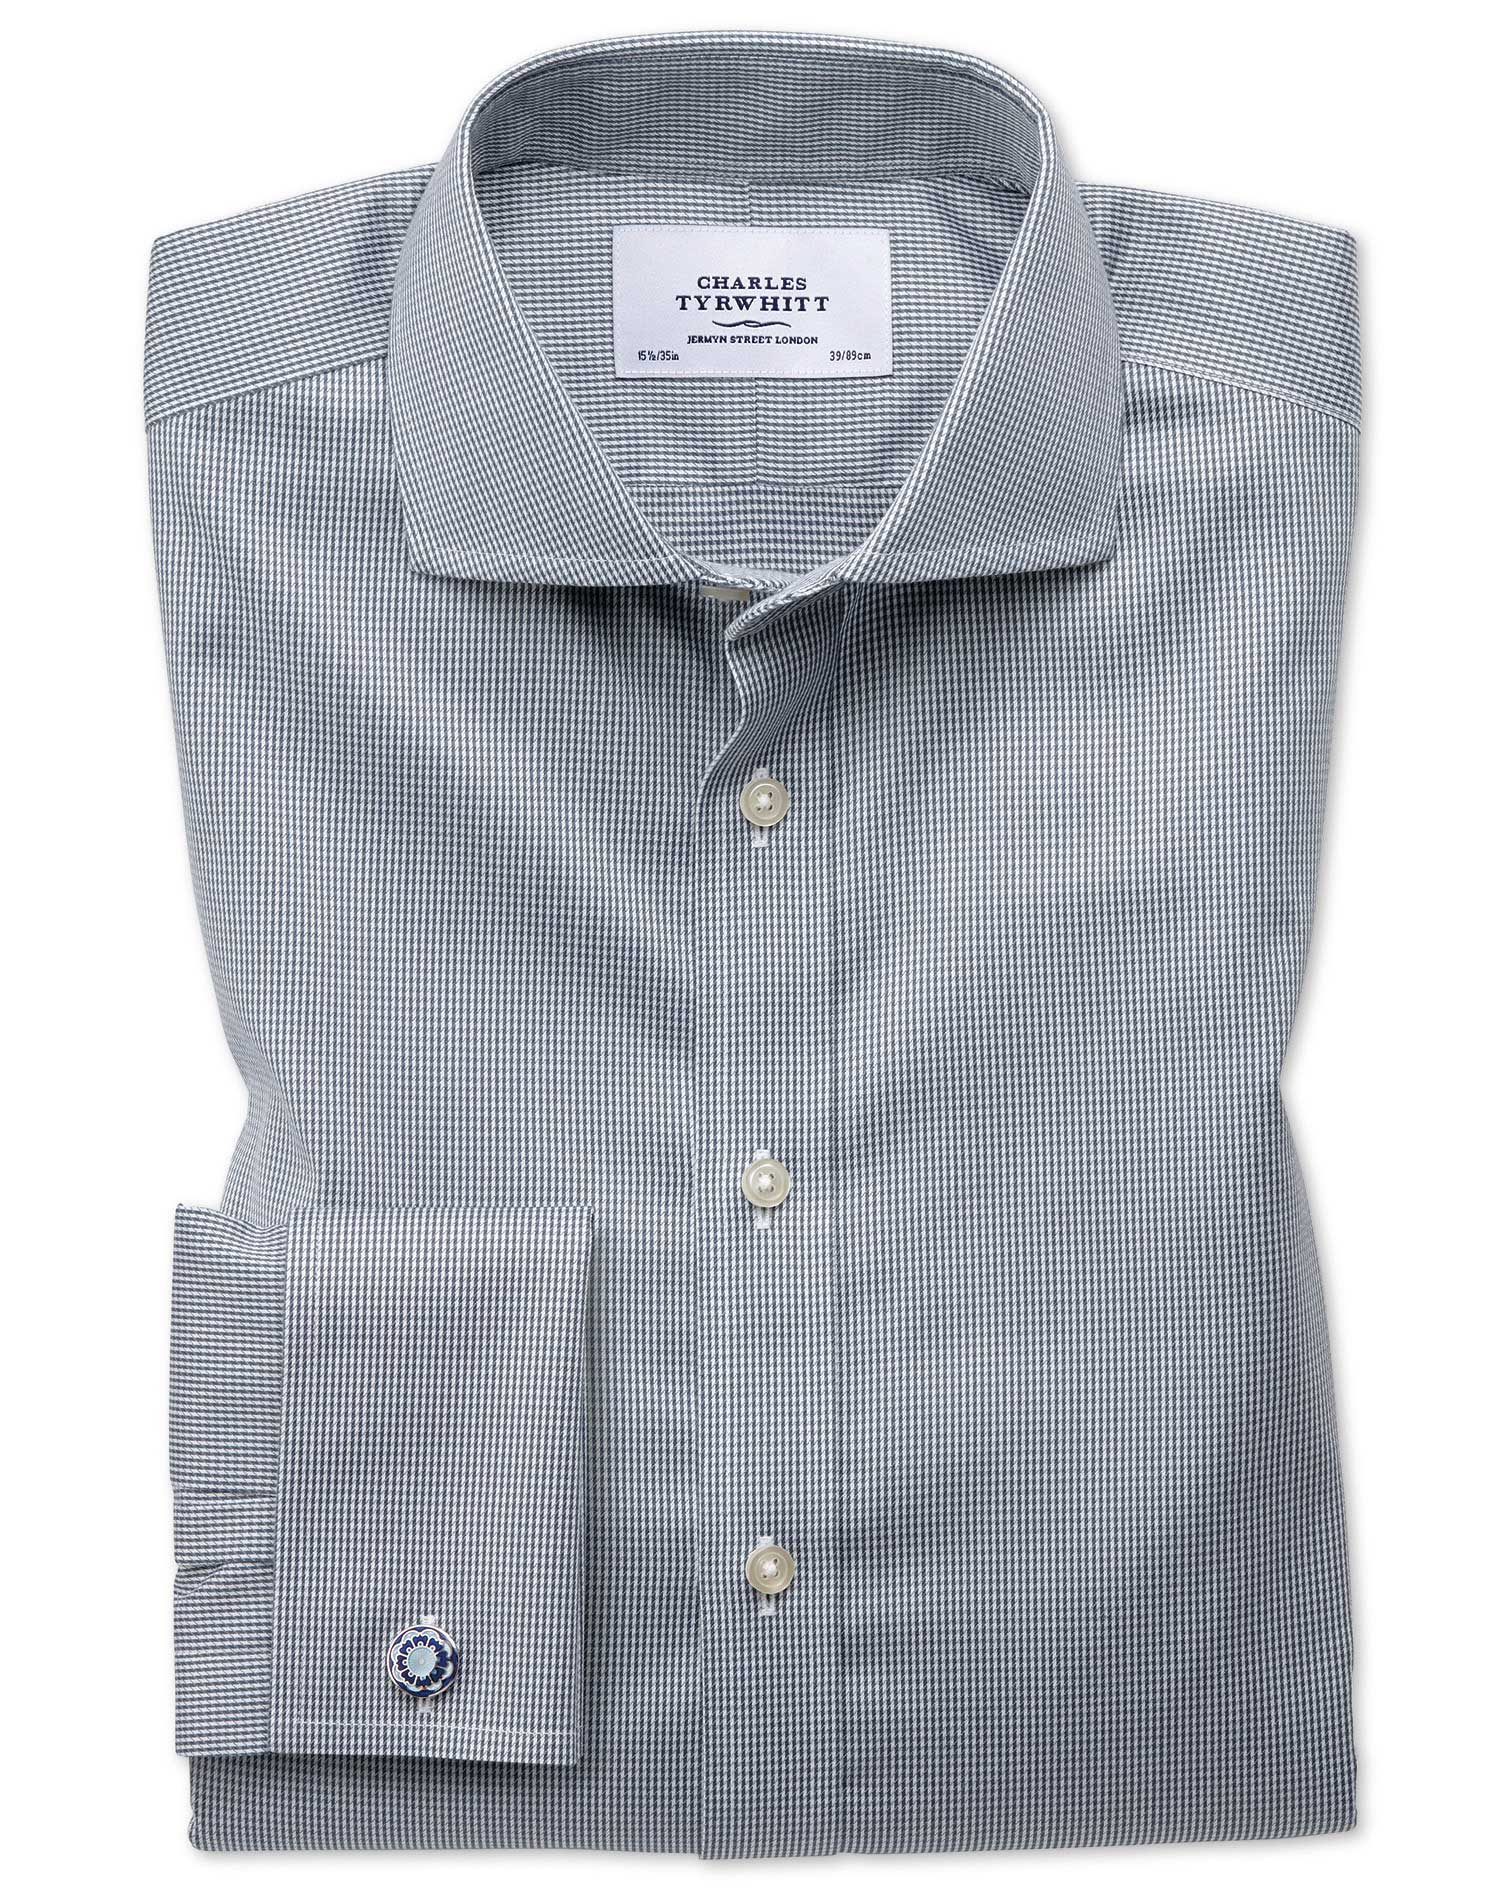 Extra Slim Fit Cutaway Non-Iron Puppytooth Dark Grey Cotton Formal Shirt Double Cuff Size 14.5/32 by